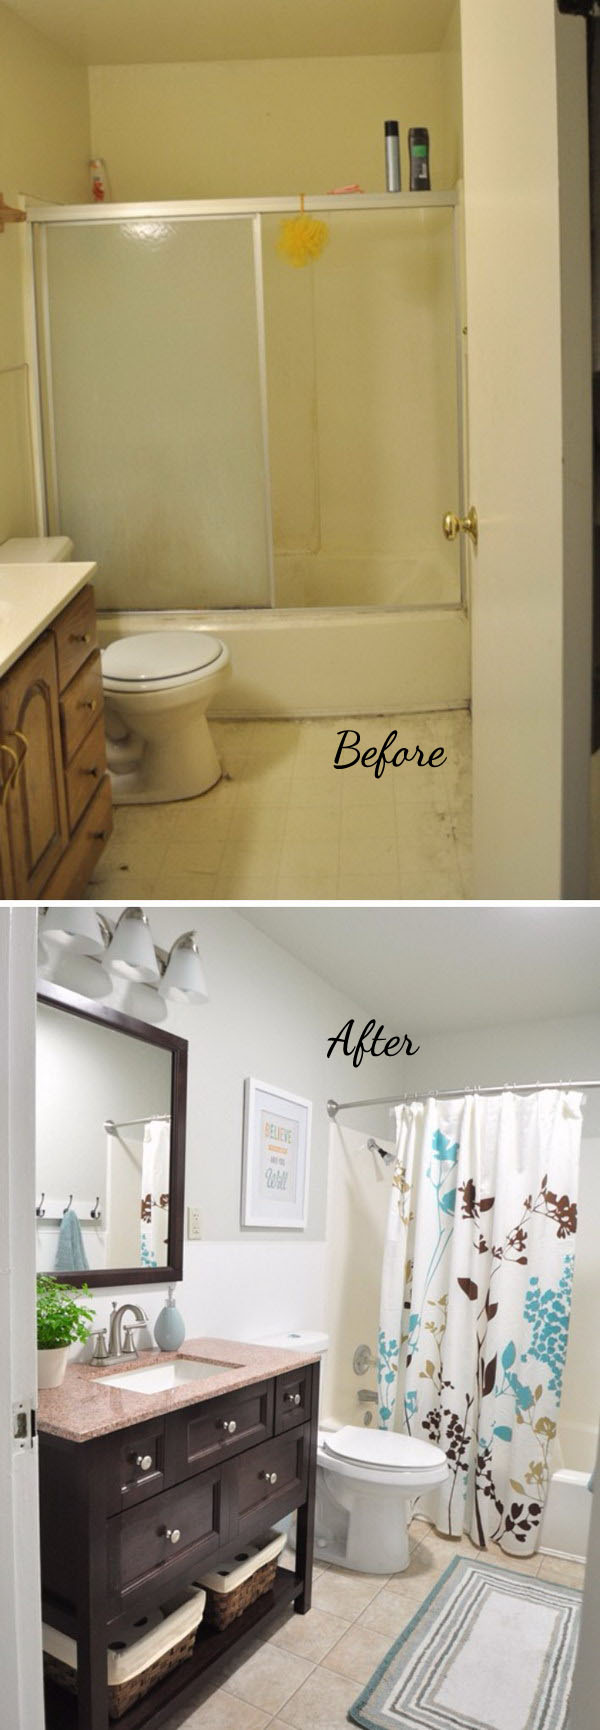 3-4-bathroom-remodel-before-and-after